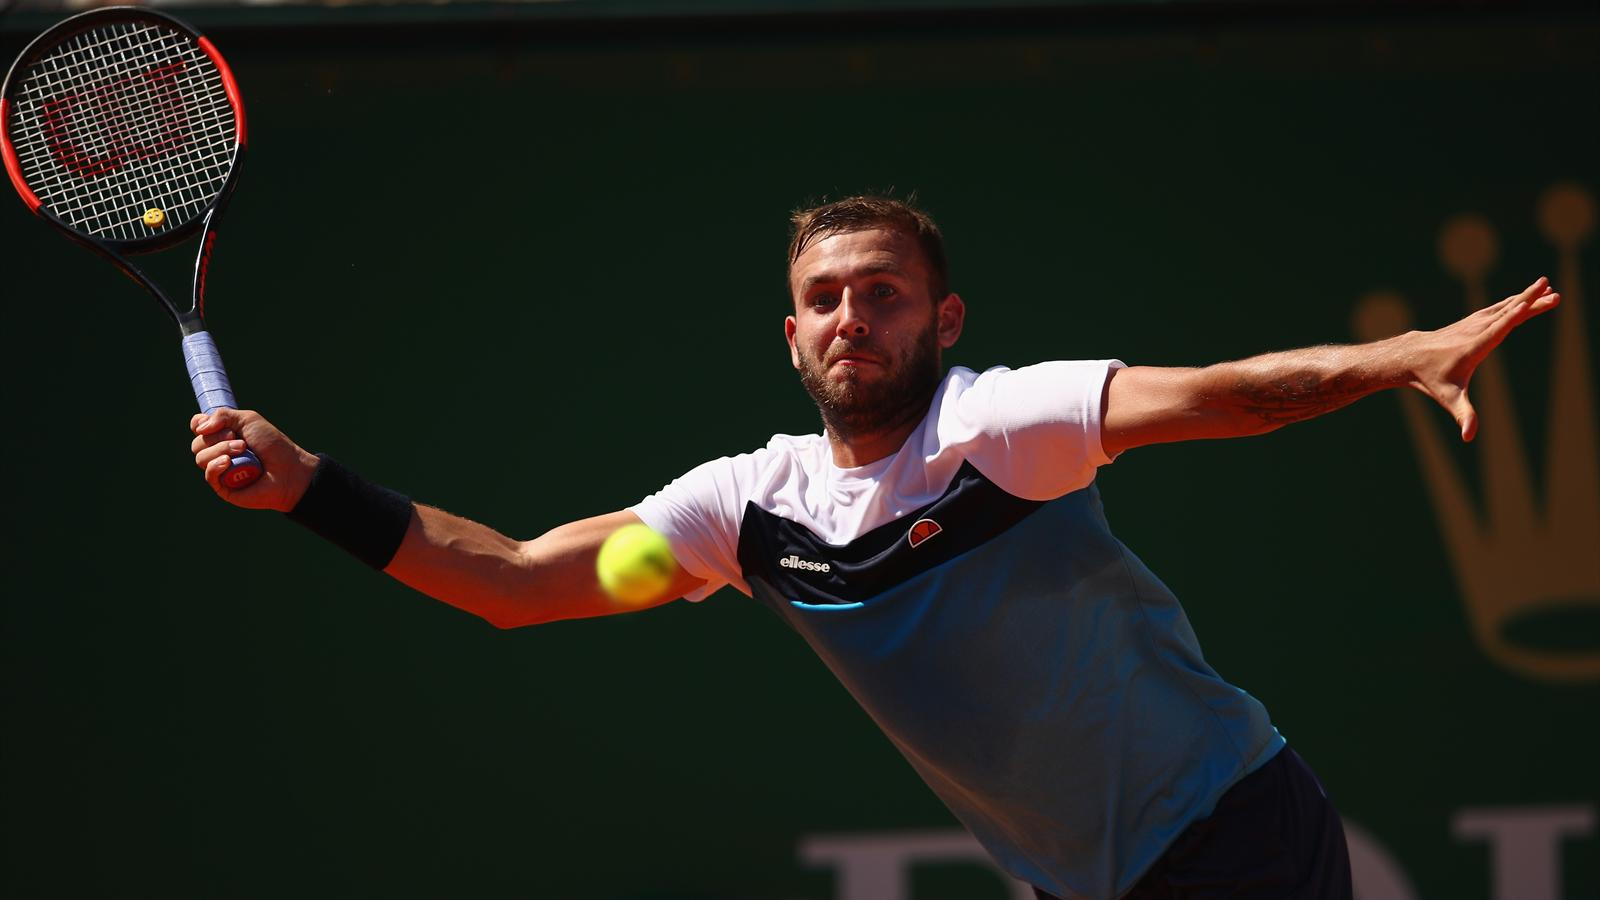 Dan evans hopes to find his way around the clay at roland for Dans way way